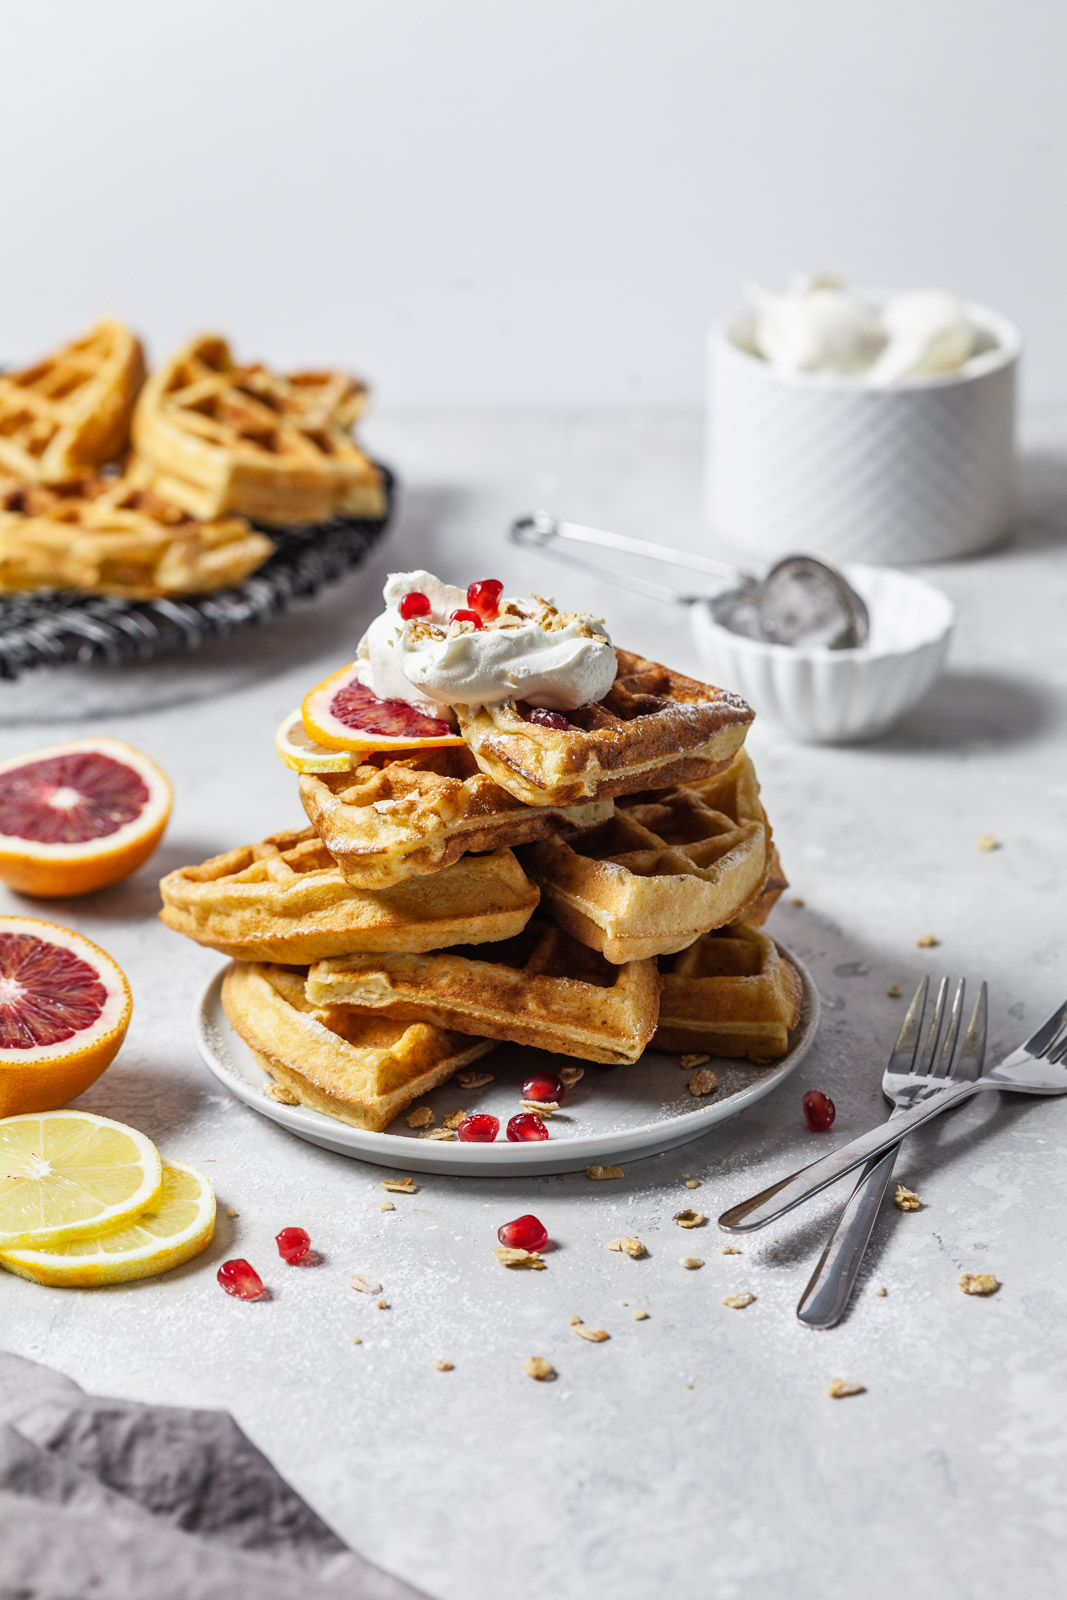 Fluffy Lemon Ricotta Waffles